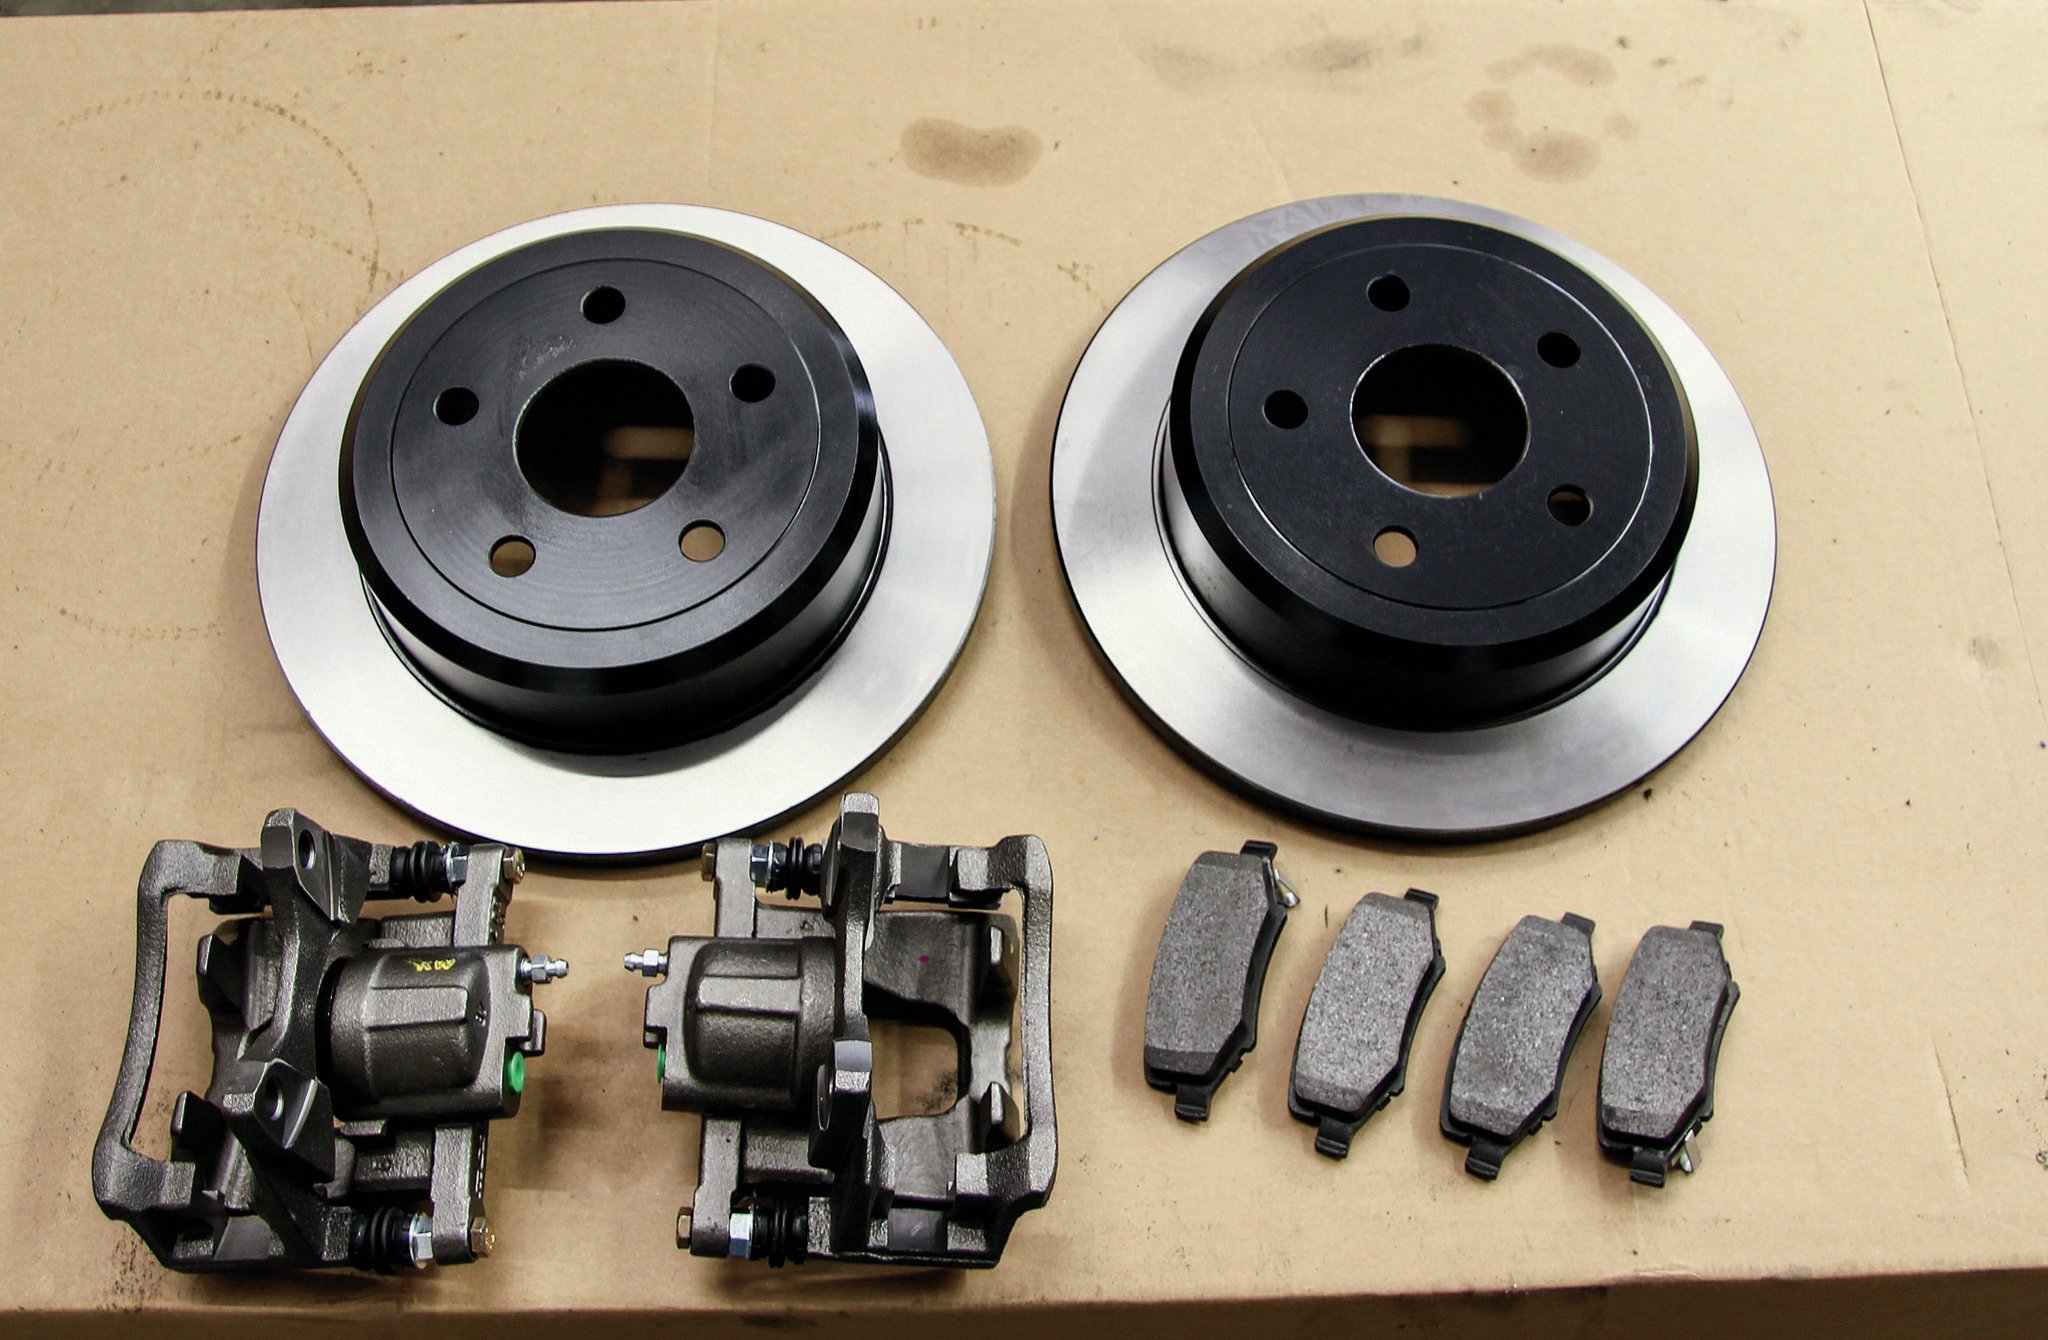 As we mentioned, we were starting from scratch in the brake department. For rotors and brake pads, we ordered a replacement set from the Jeep mega-parts house Omix-ADA. We purchased the calipers from our local parts house.